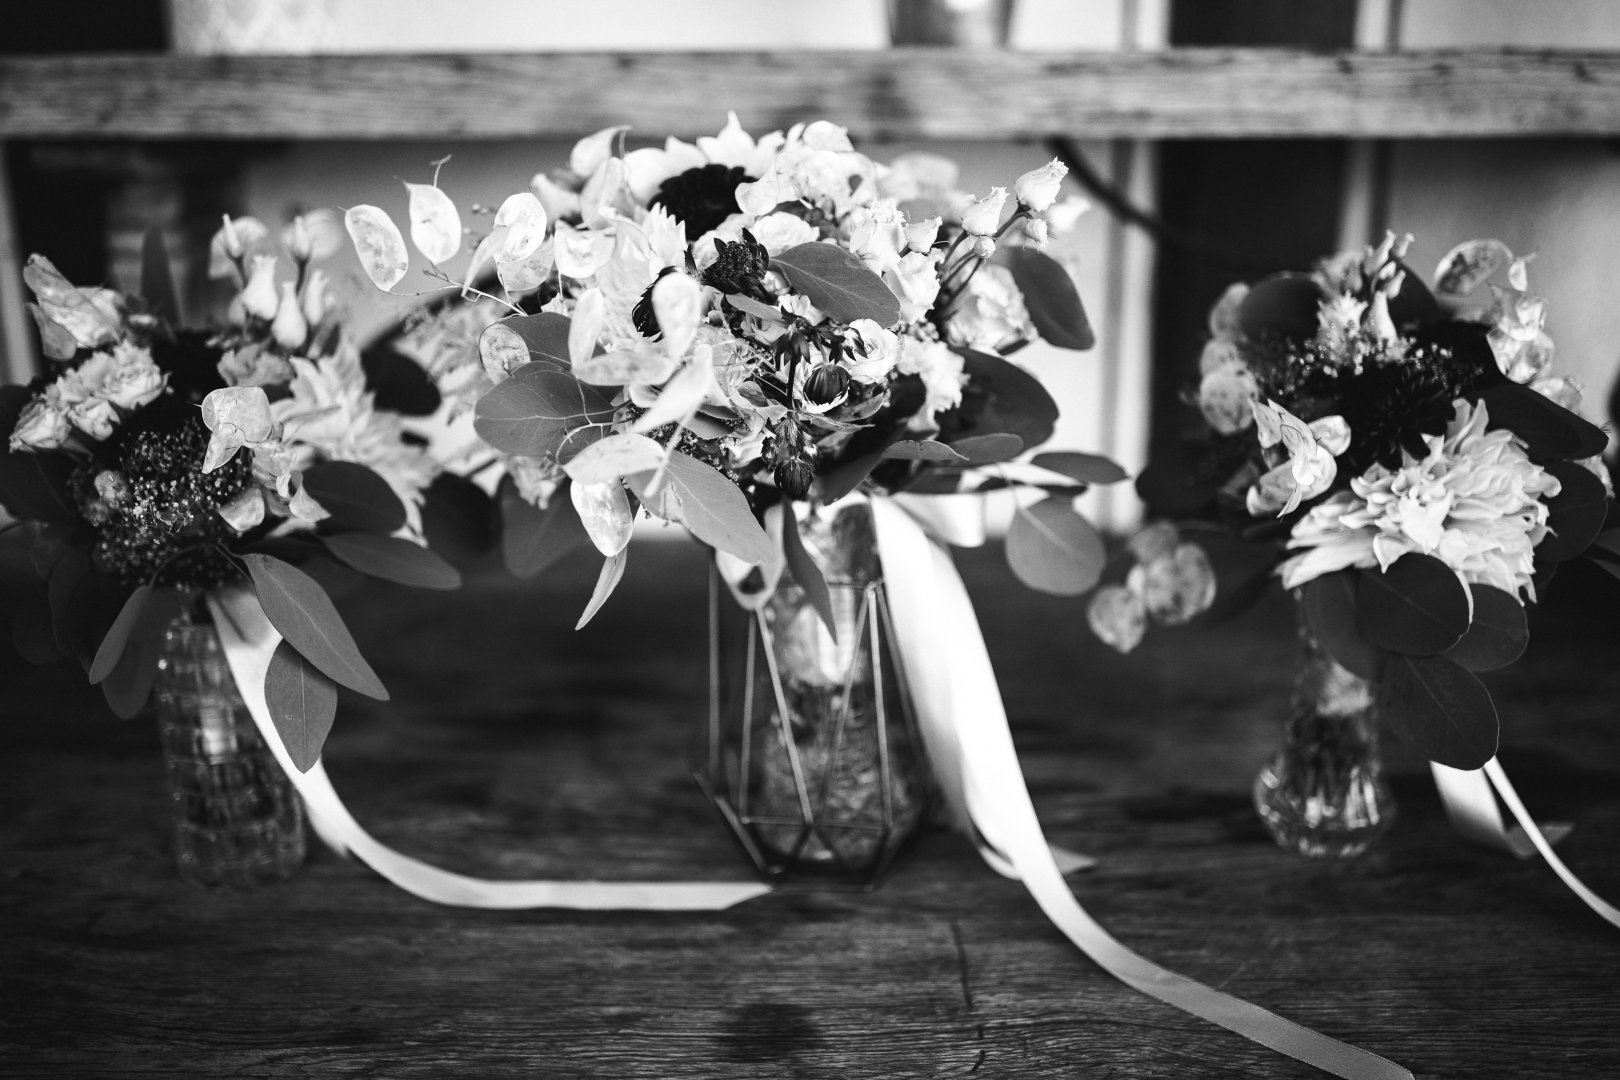 White Bouquet Photograph Black-and-white Monochrome photography Black Flower Still life photography Cut flowers Monochrome Flower Arranging Floral design Plant Photography Floristry Stock photography Ceremony Petal Style Wildflower Still life Hydrangea Wedding Cornales Artificial flower